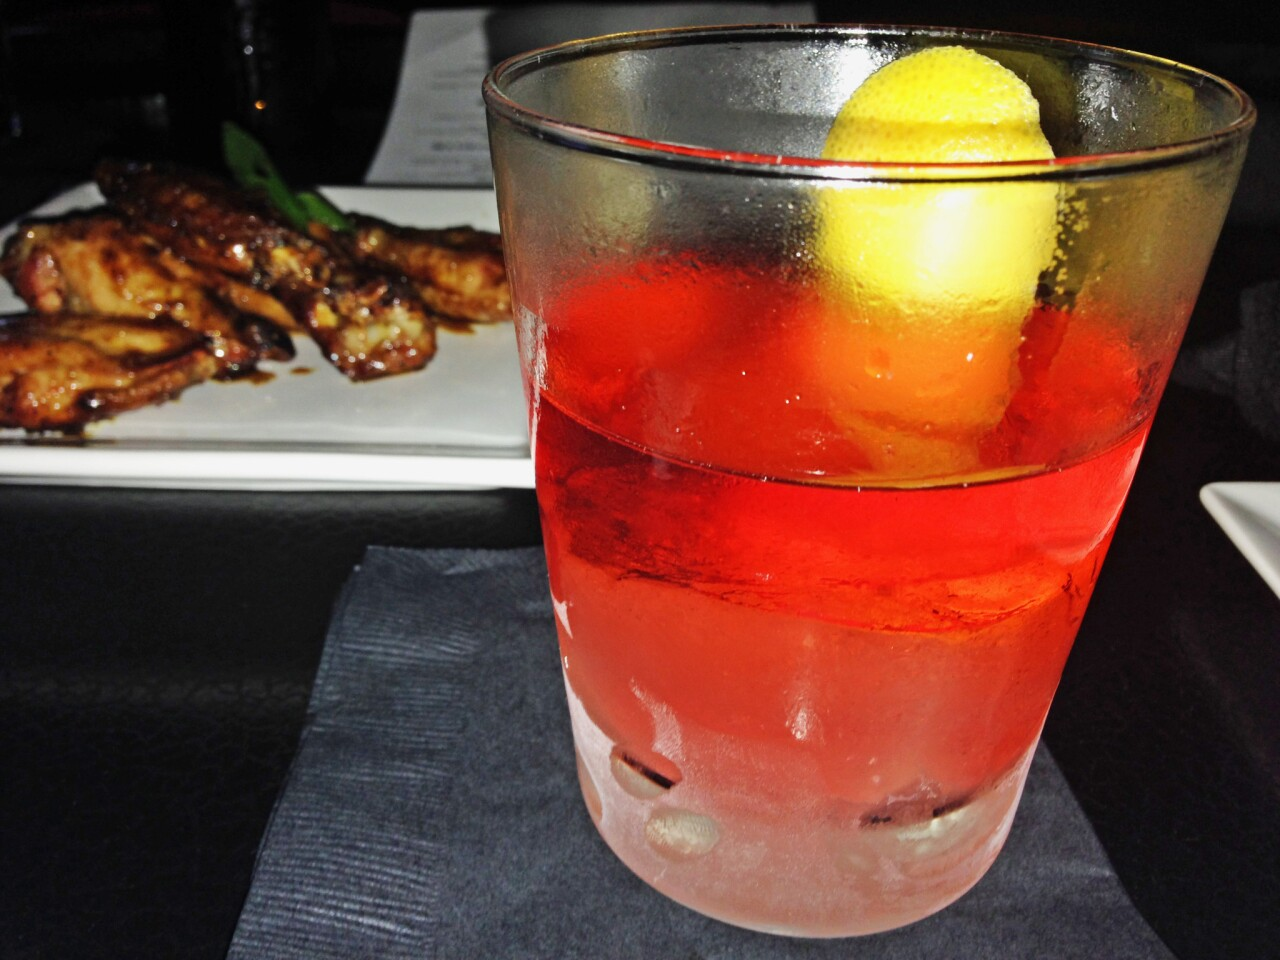 The Little Fatso, made with rye whiskey, dry vermouth, Campari and pamplemousse.